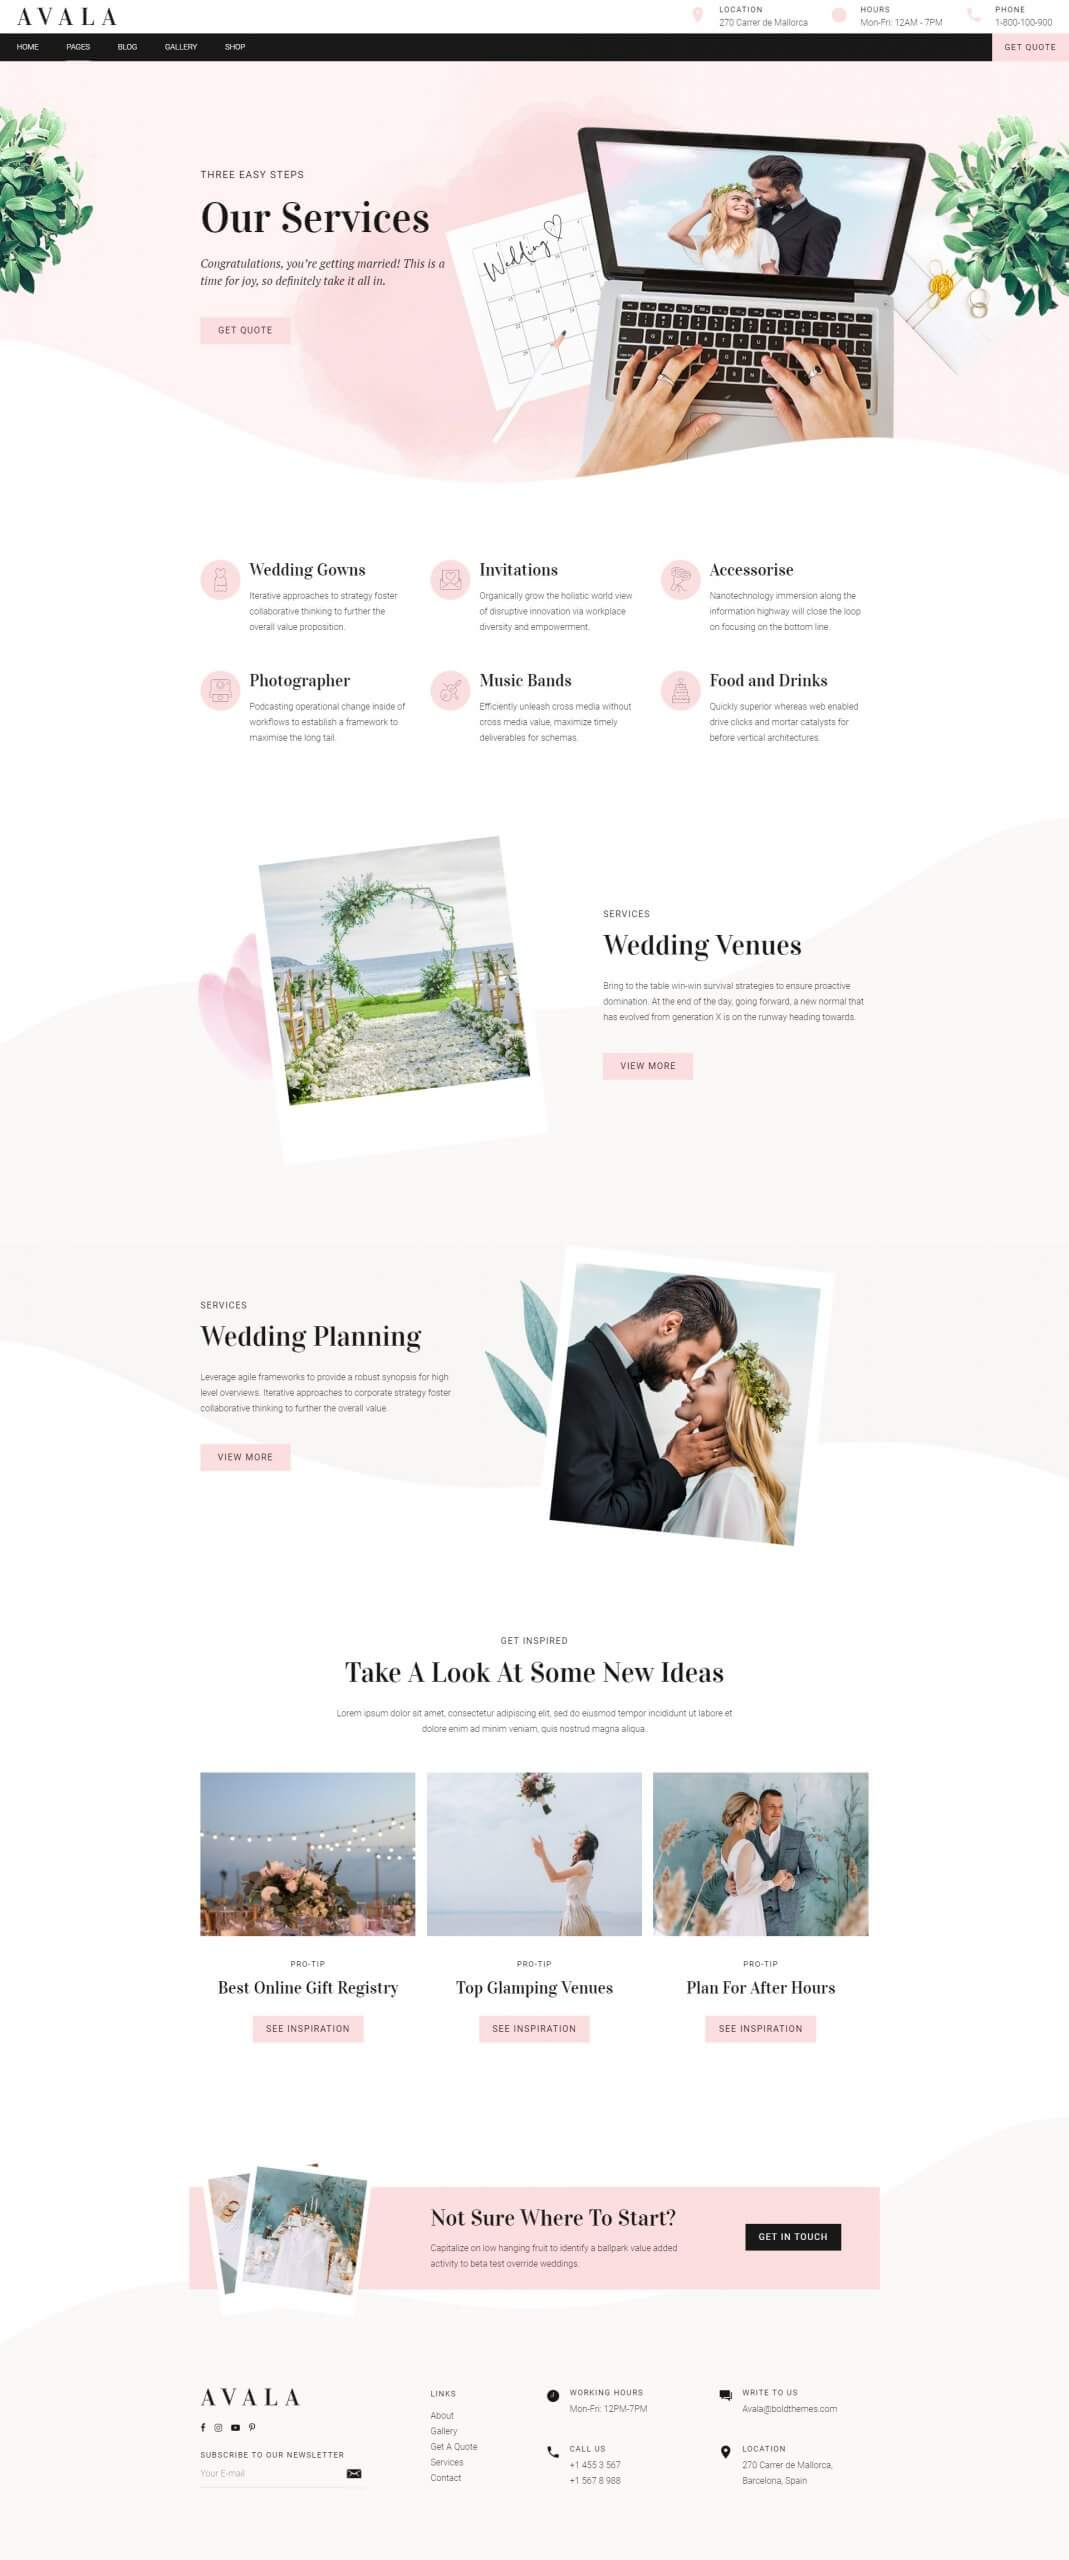 http://avala.bold-themes.com/wp-content/uploads/2021/02/Summer-Services-scaled.jpg